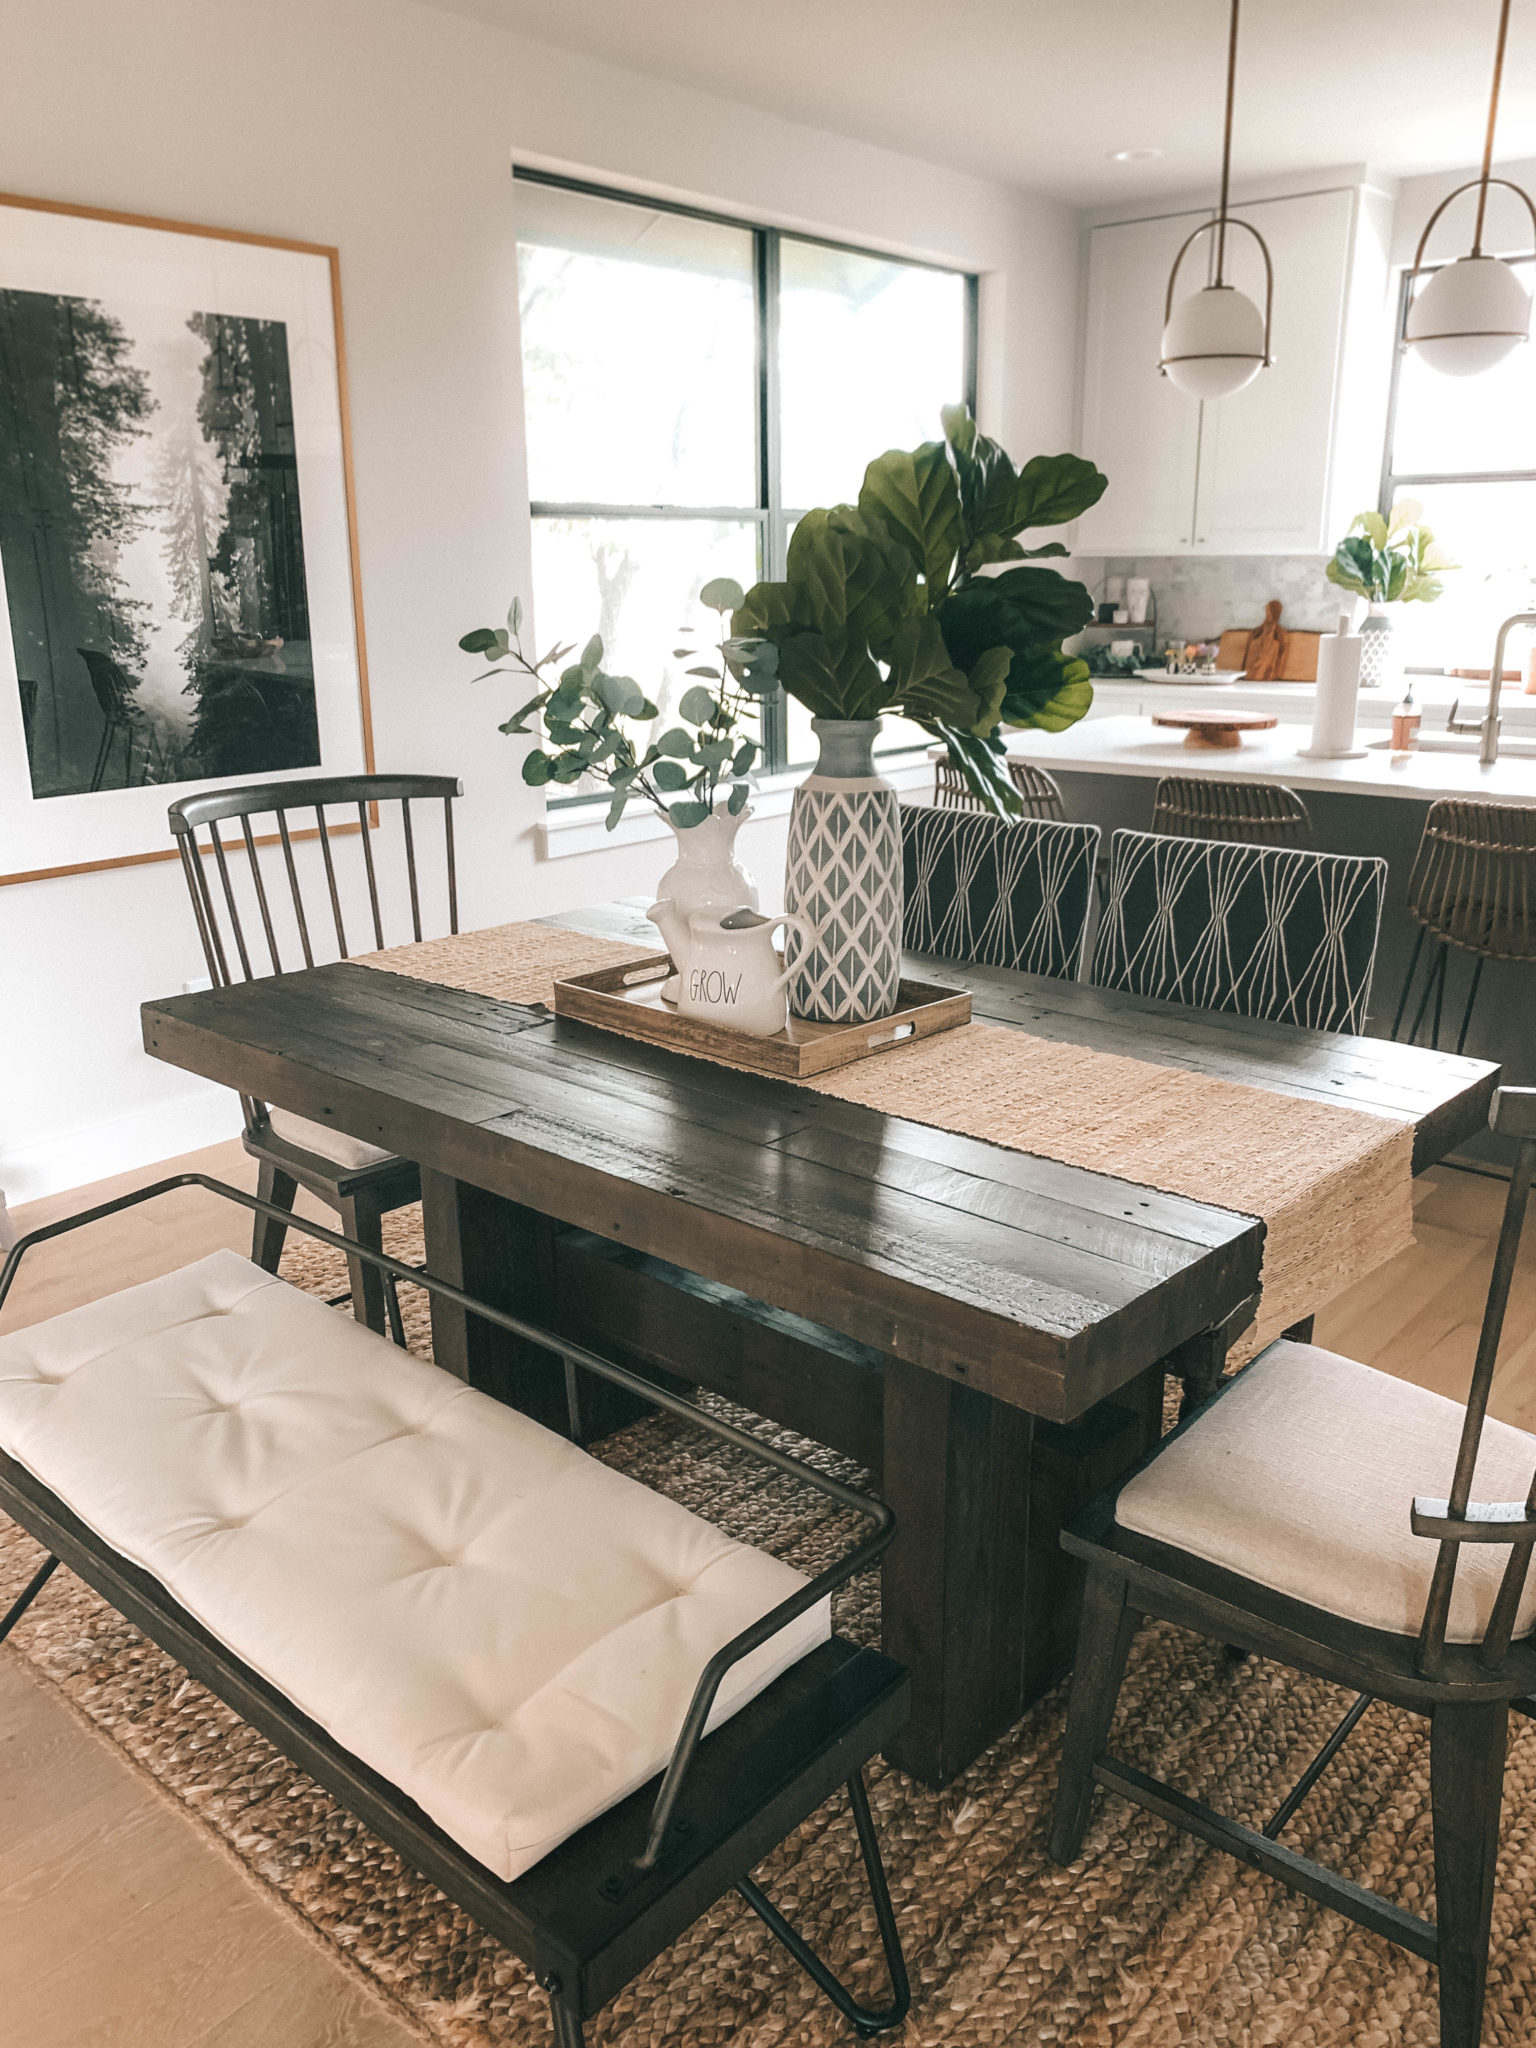 "Stunning Summer Dining Room Decorating Ideas by popular Austin lifestyle blog, Dressed to Kill: image of a dining room decorated with a West Elm Chestnut Emmerson® Reclaimed Wood Dining Table, Wayfair Abigale Low Back Metal Bench, World Market Flynn counter stools, World Market Flynn area rug, Target Threshold Tan Natural Ramie Table Runner (72""X14""), West Elm Reclaimed Wood Trays, MacKenzie-Childs Sweetbriar Vase, RAE DUNN ARTISAN NOURISH WATER PITCHER, Minted Redwood Morning print, and Anthropologie White-Dipped Ladder."